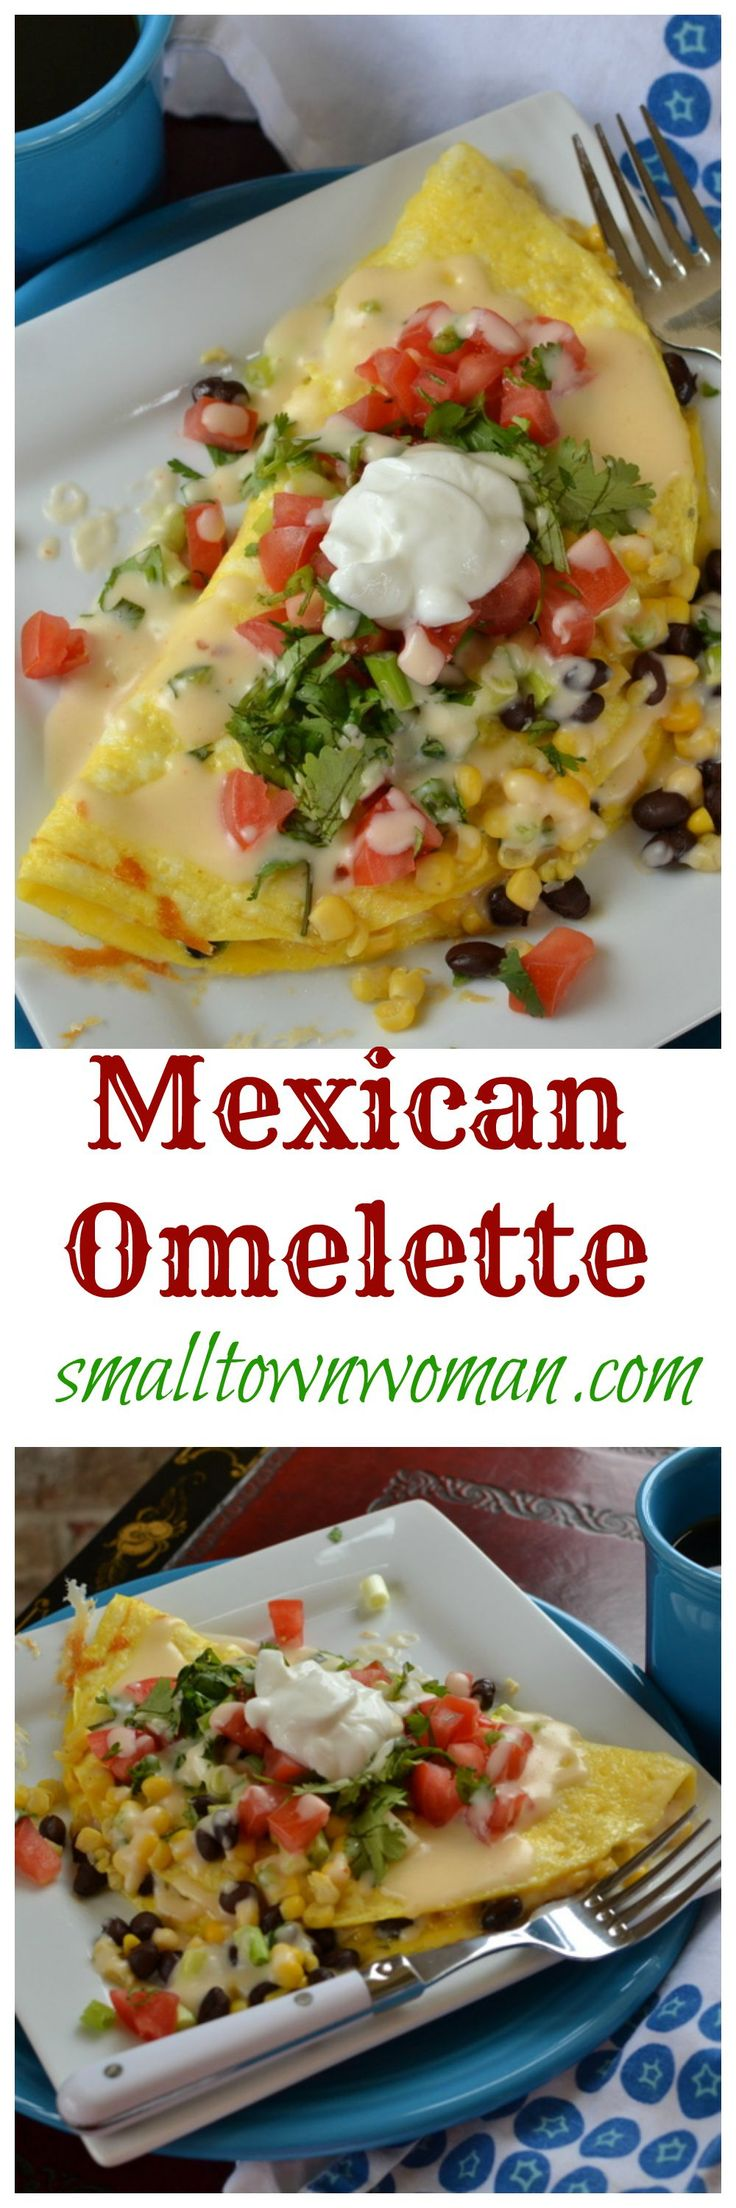 Mexican Omelette | Recipe | Black beans, Small towns and ...